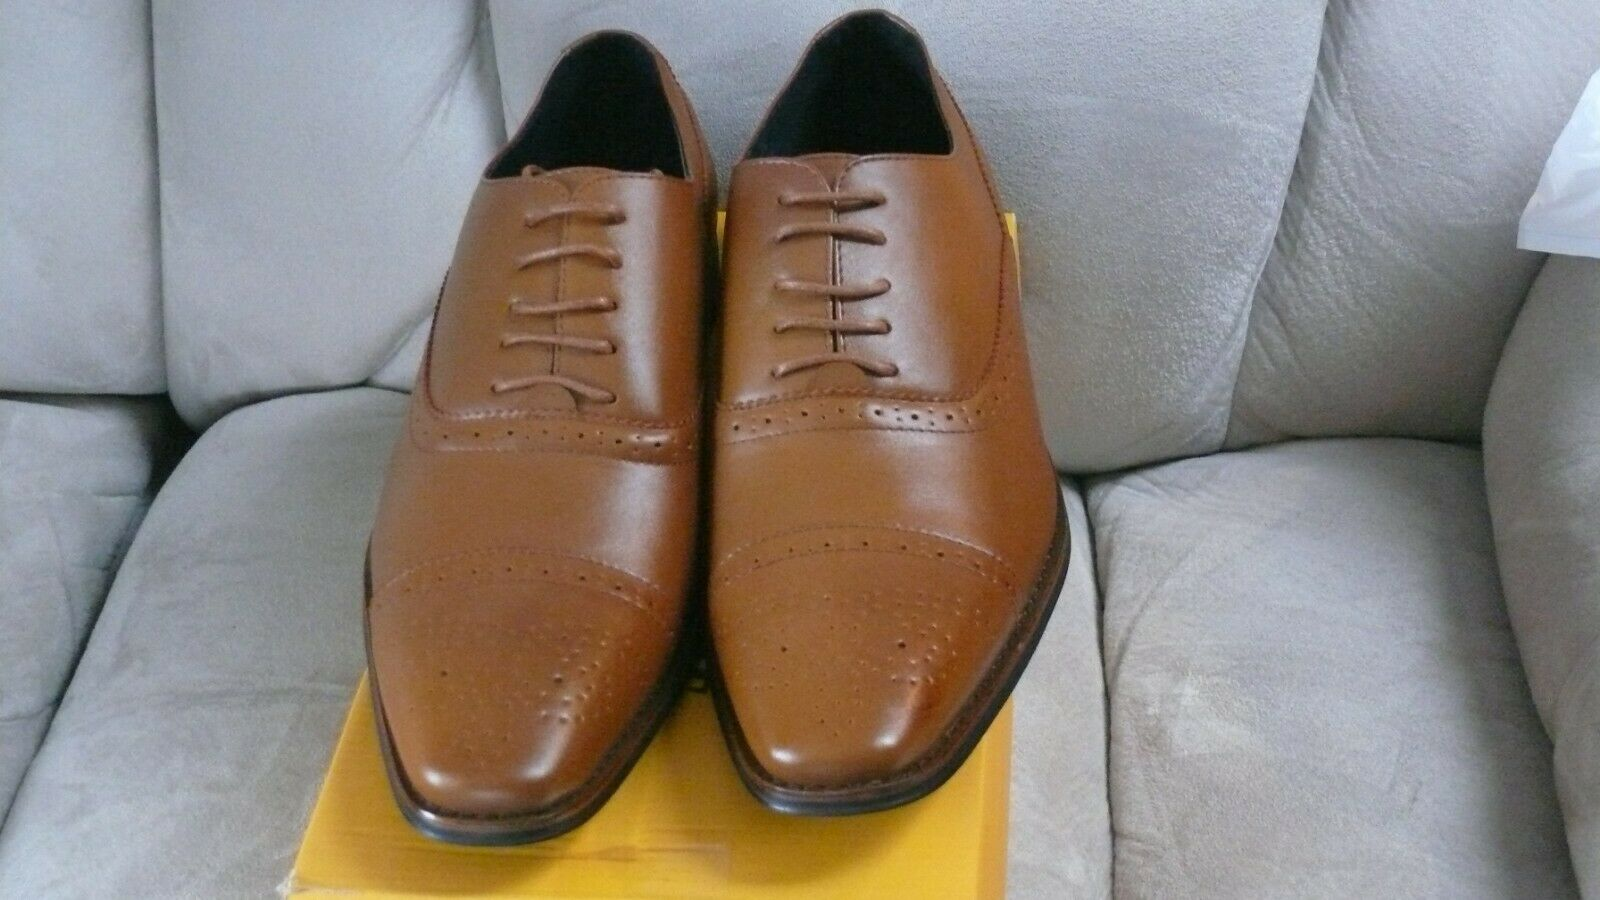 UV Signature Men's Brogue Cap Toe Oxford Dress shoes Tan Brown Size 12 022719C